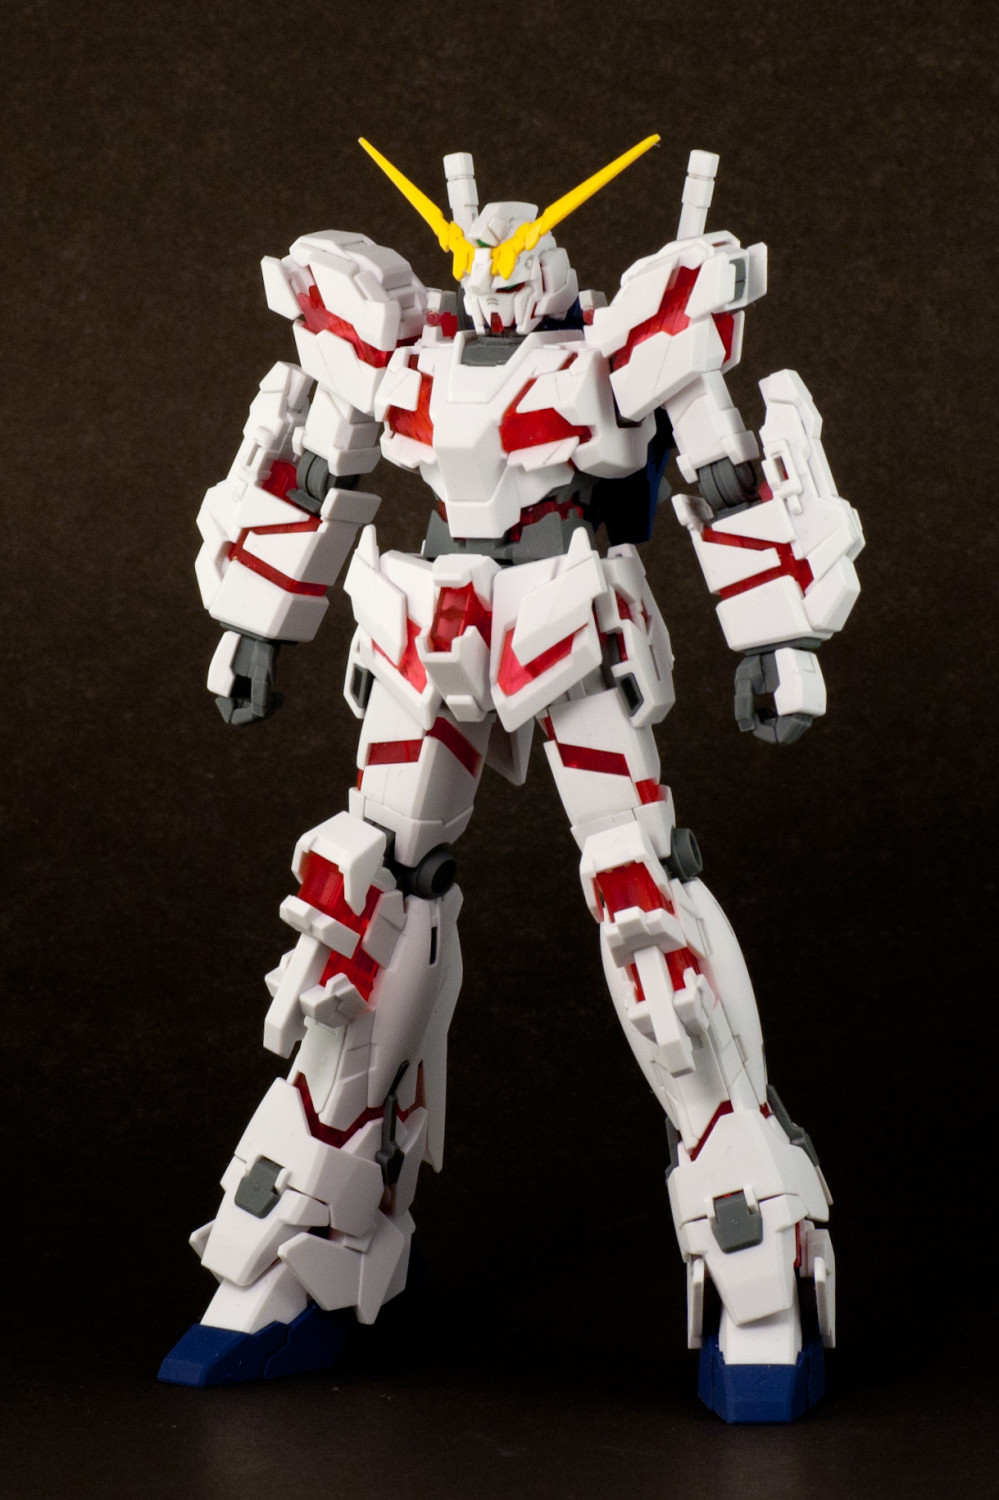 Review Hguc Unicorn Gundam Unicorn Mode Amp Destroy Mode